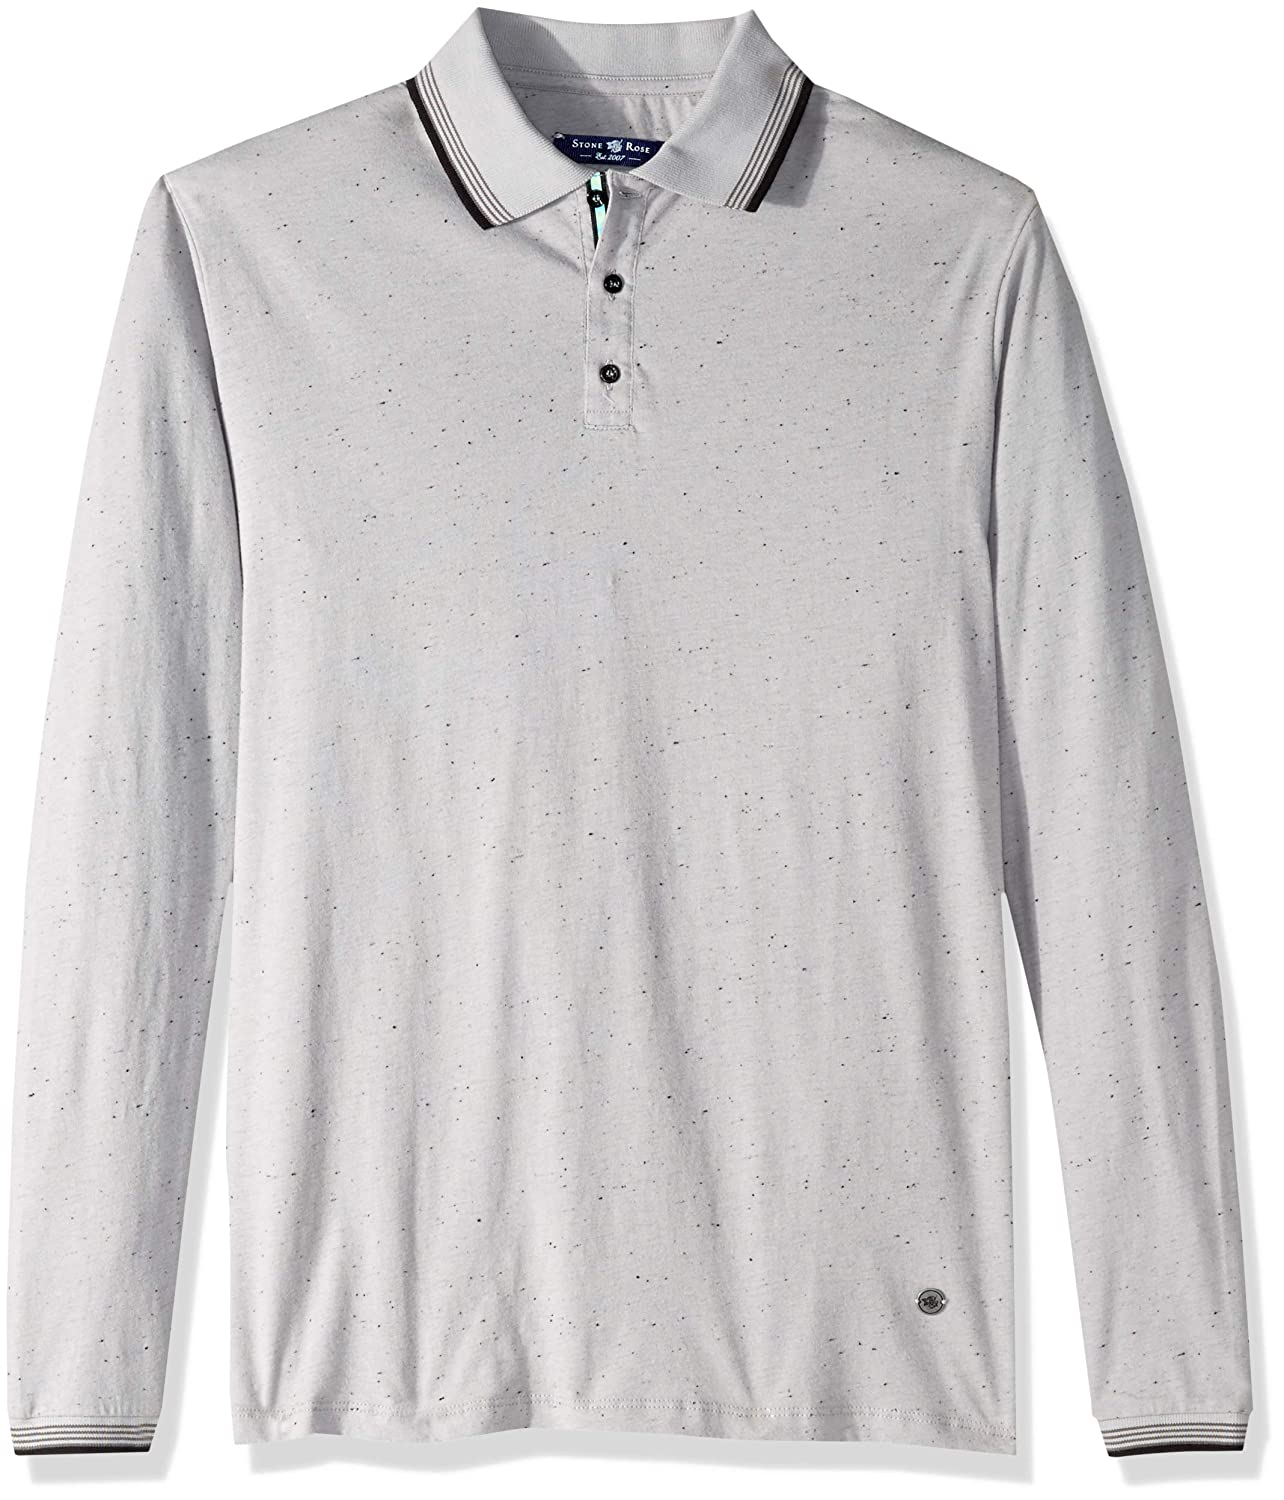 Stone Rose Mens Long Sleeve Speckle Knit Polo